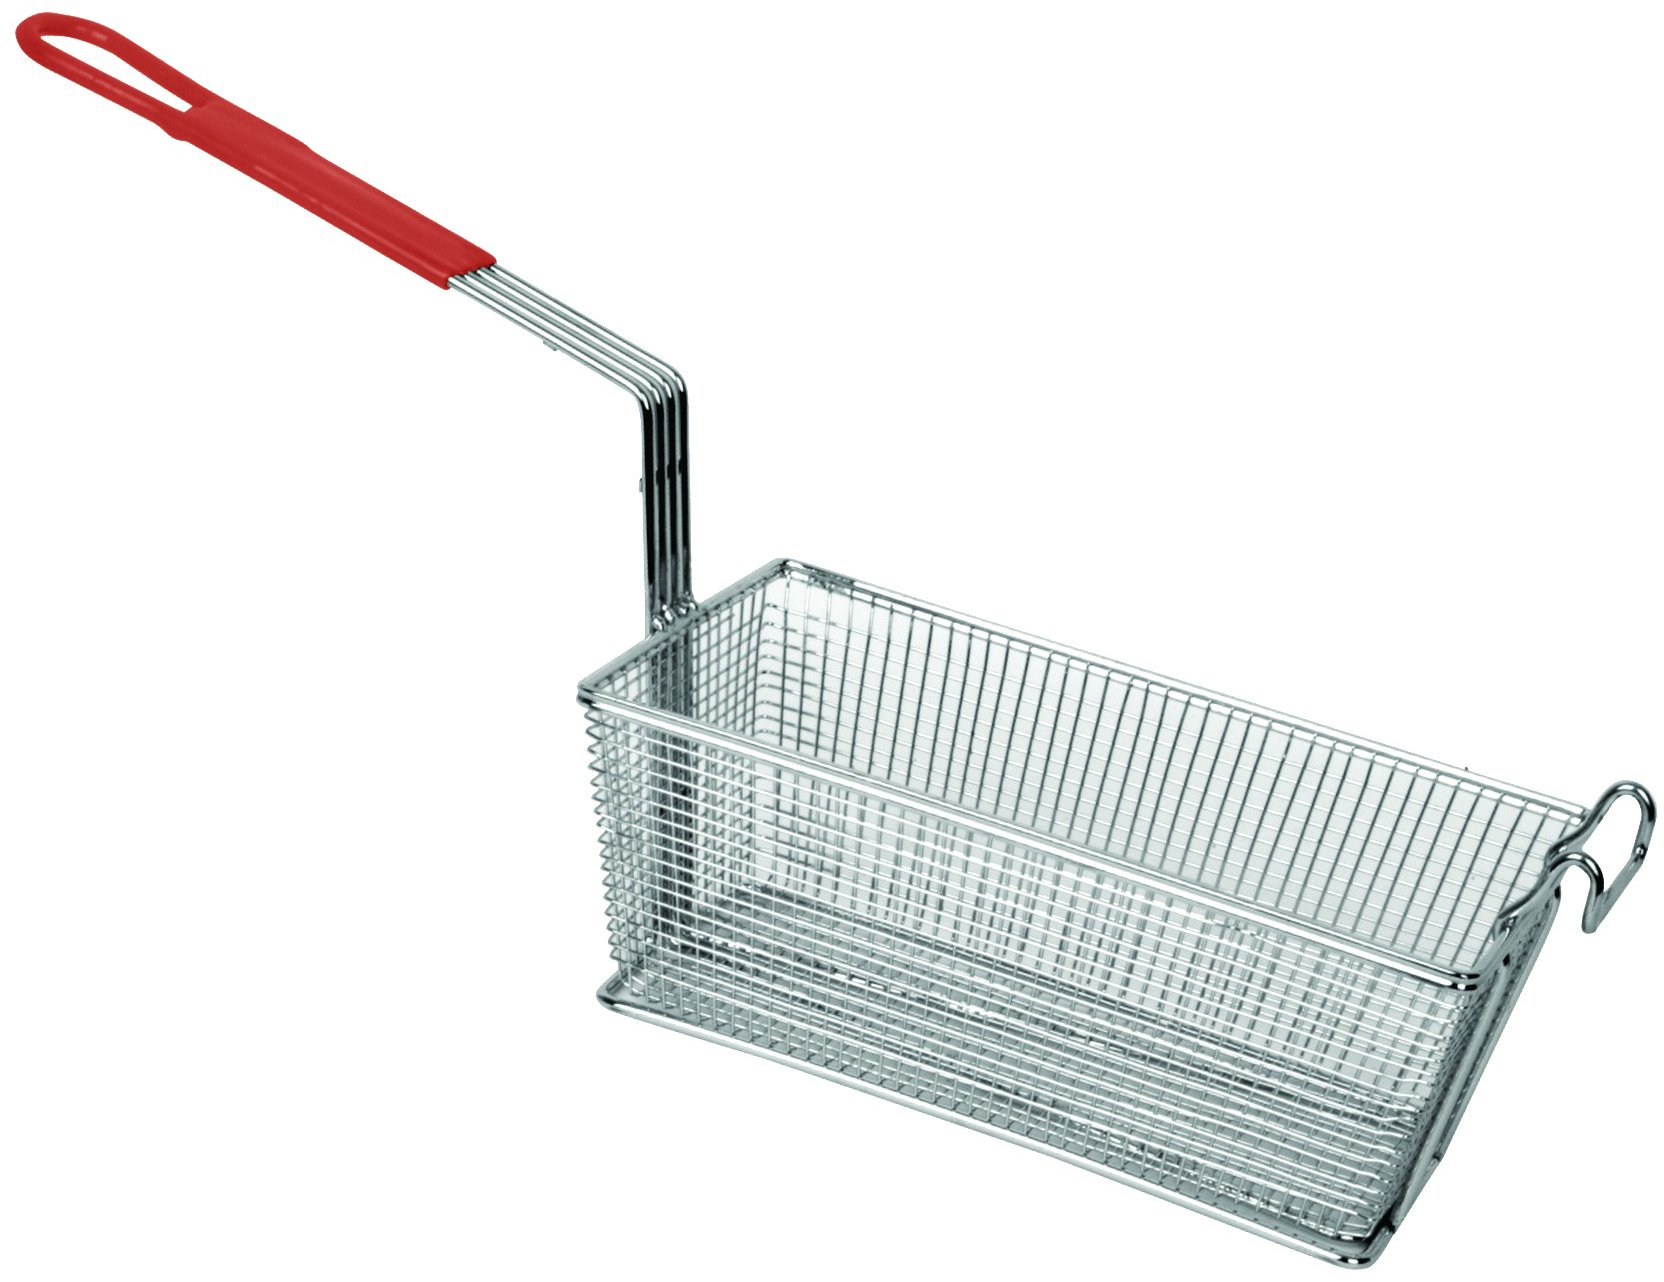 Browne (79207) 13'' x 5-1/2'' Wire Rectangular Fry Basket w/ Red Plastic Handle